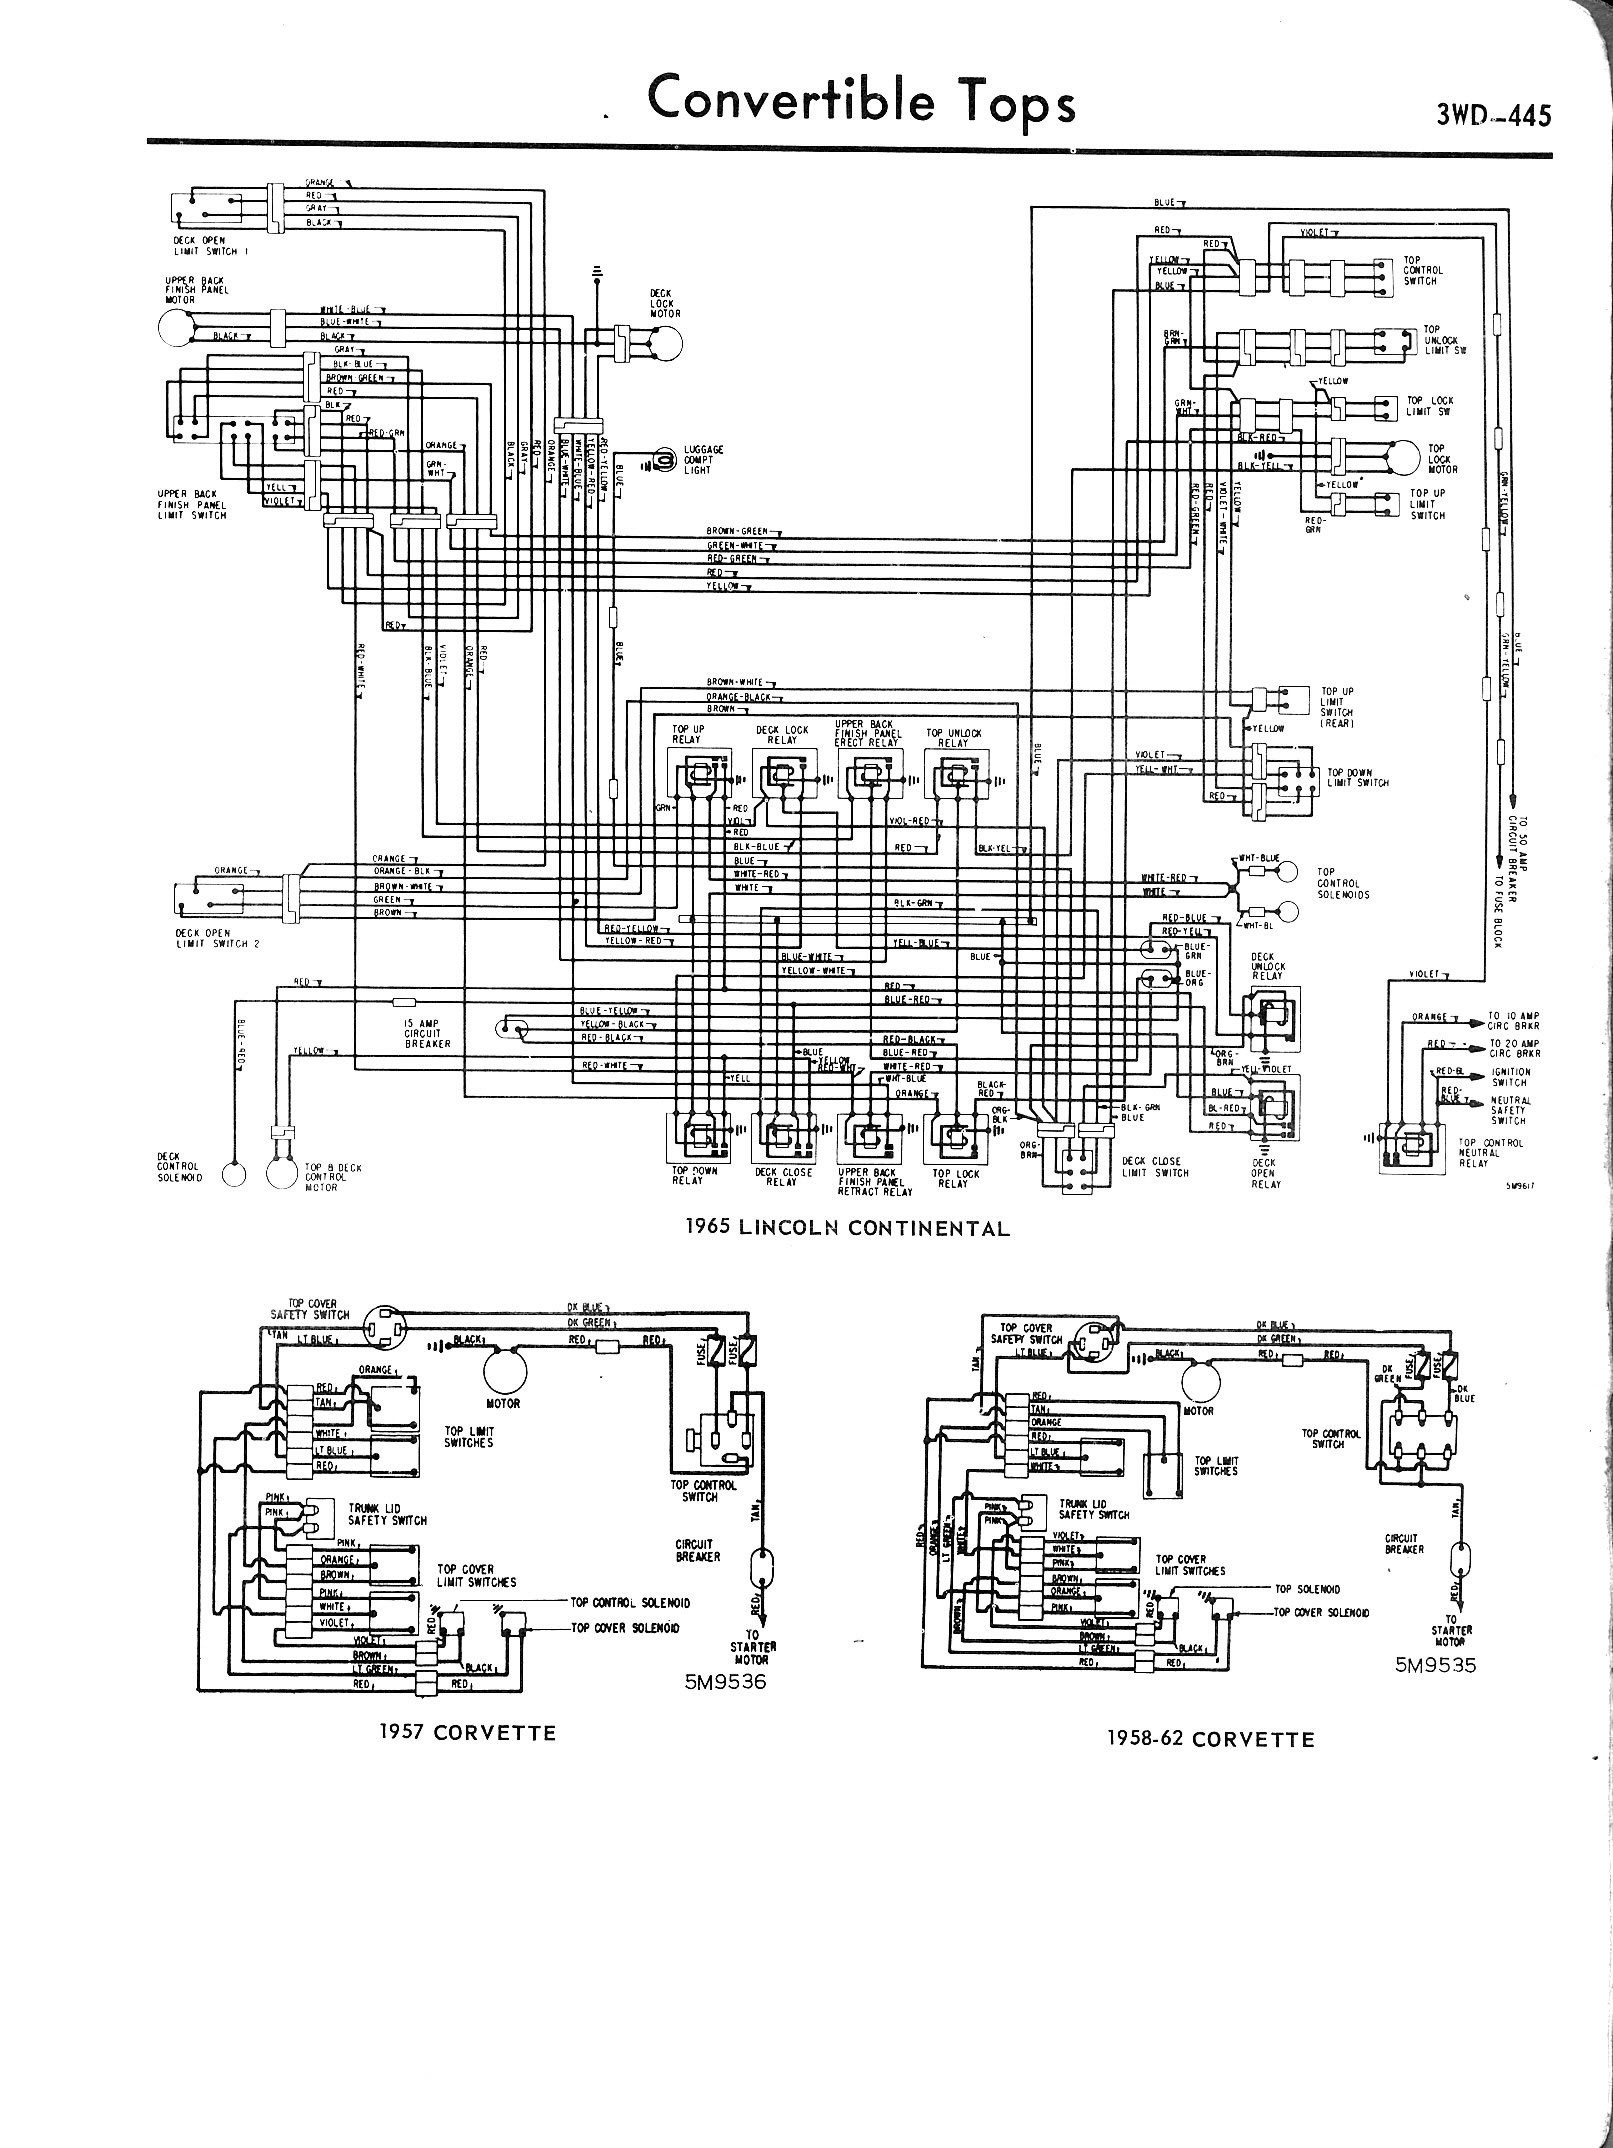 3WD 445_jpg 57 convertible wiring harness conv top trifive com, 1955 chevy 1957 chevrolet wiring diagram at readyjetset.co